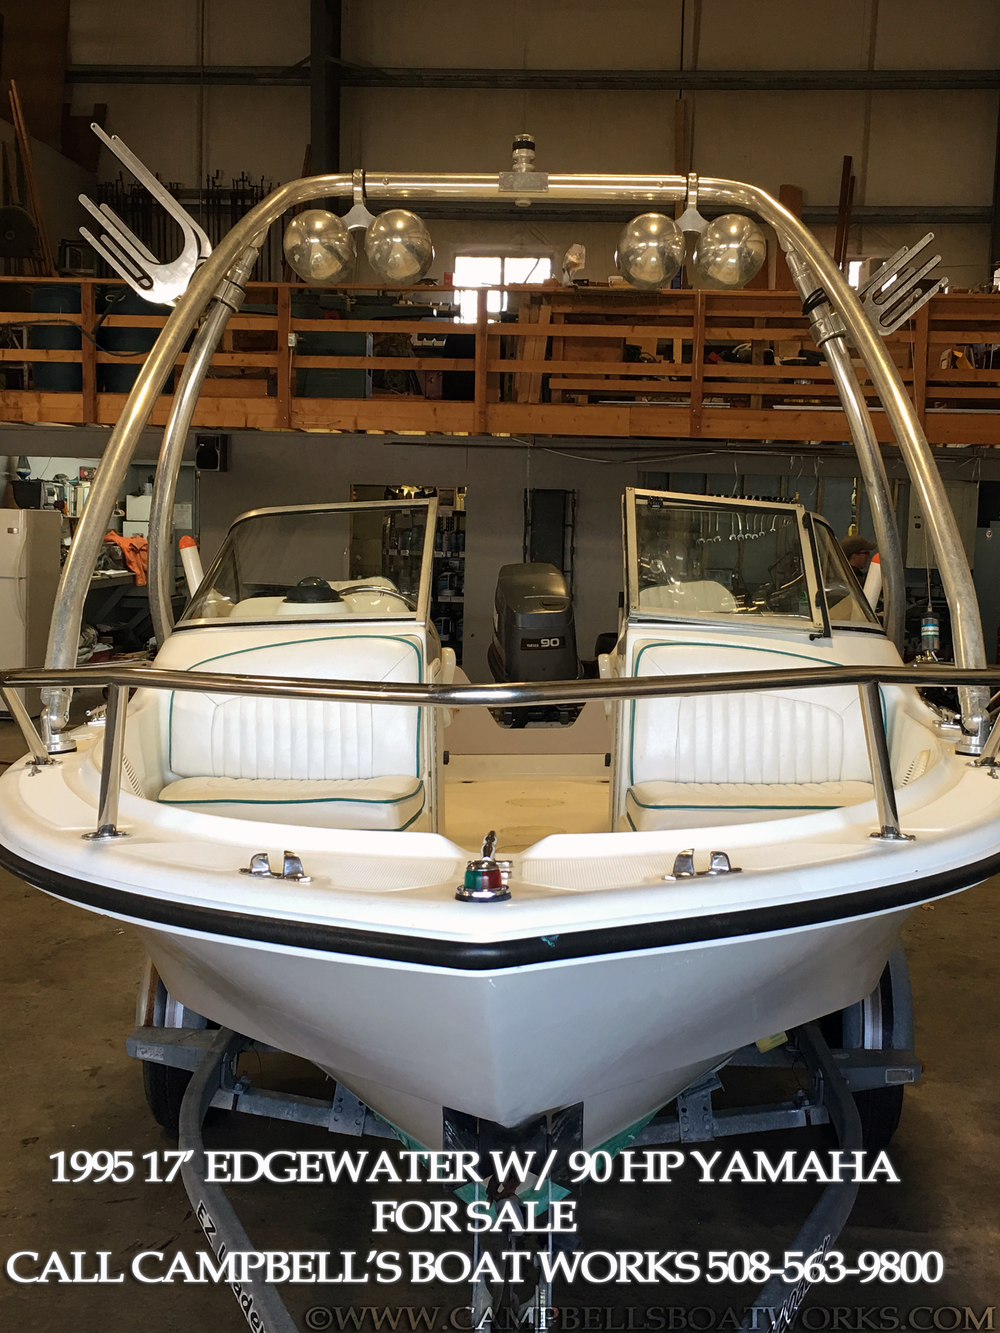 edgewater-17-sport-dougherty-marine-boat-for-sale-yamaha-outboard.png